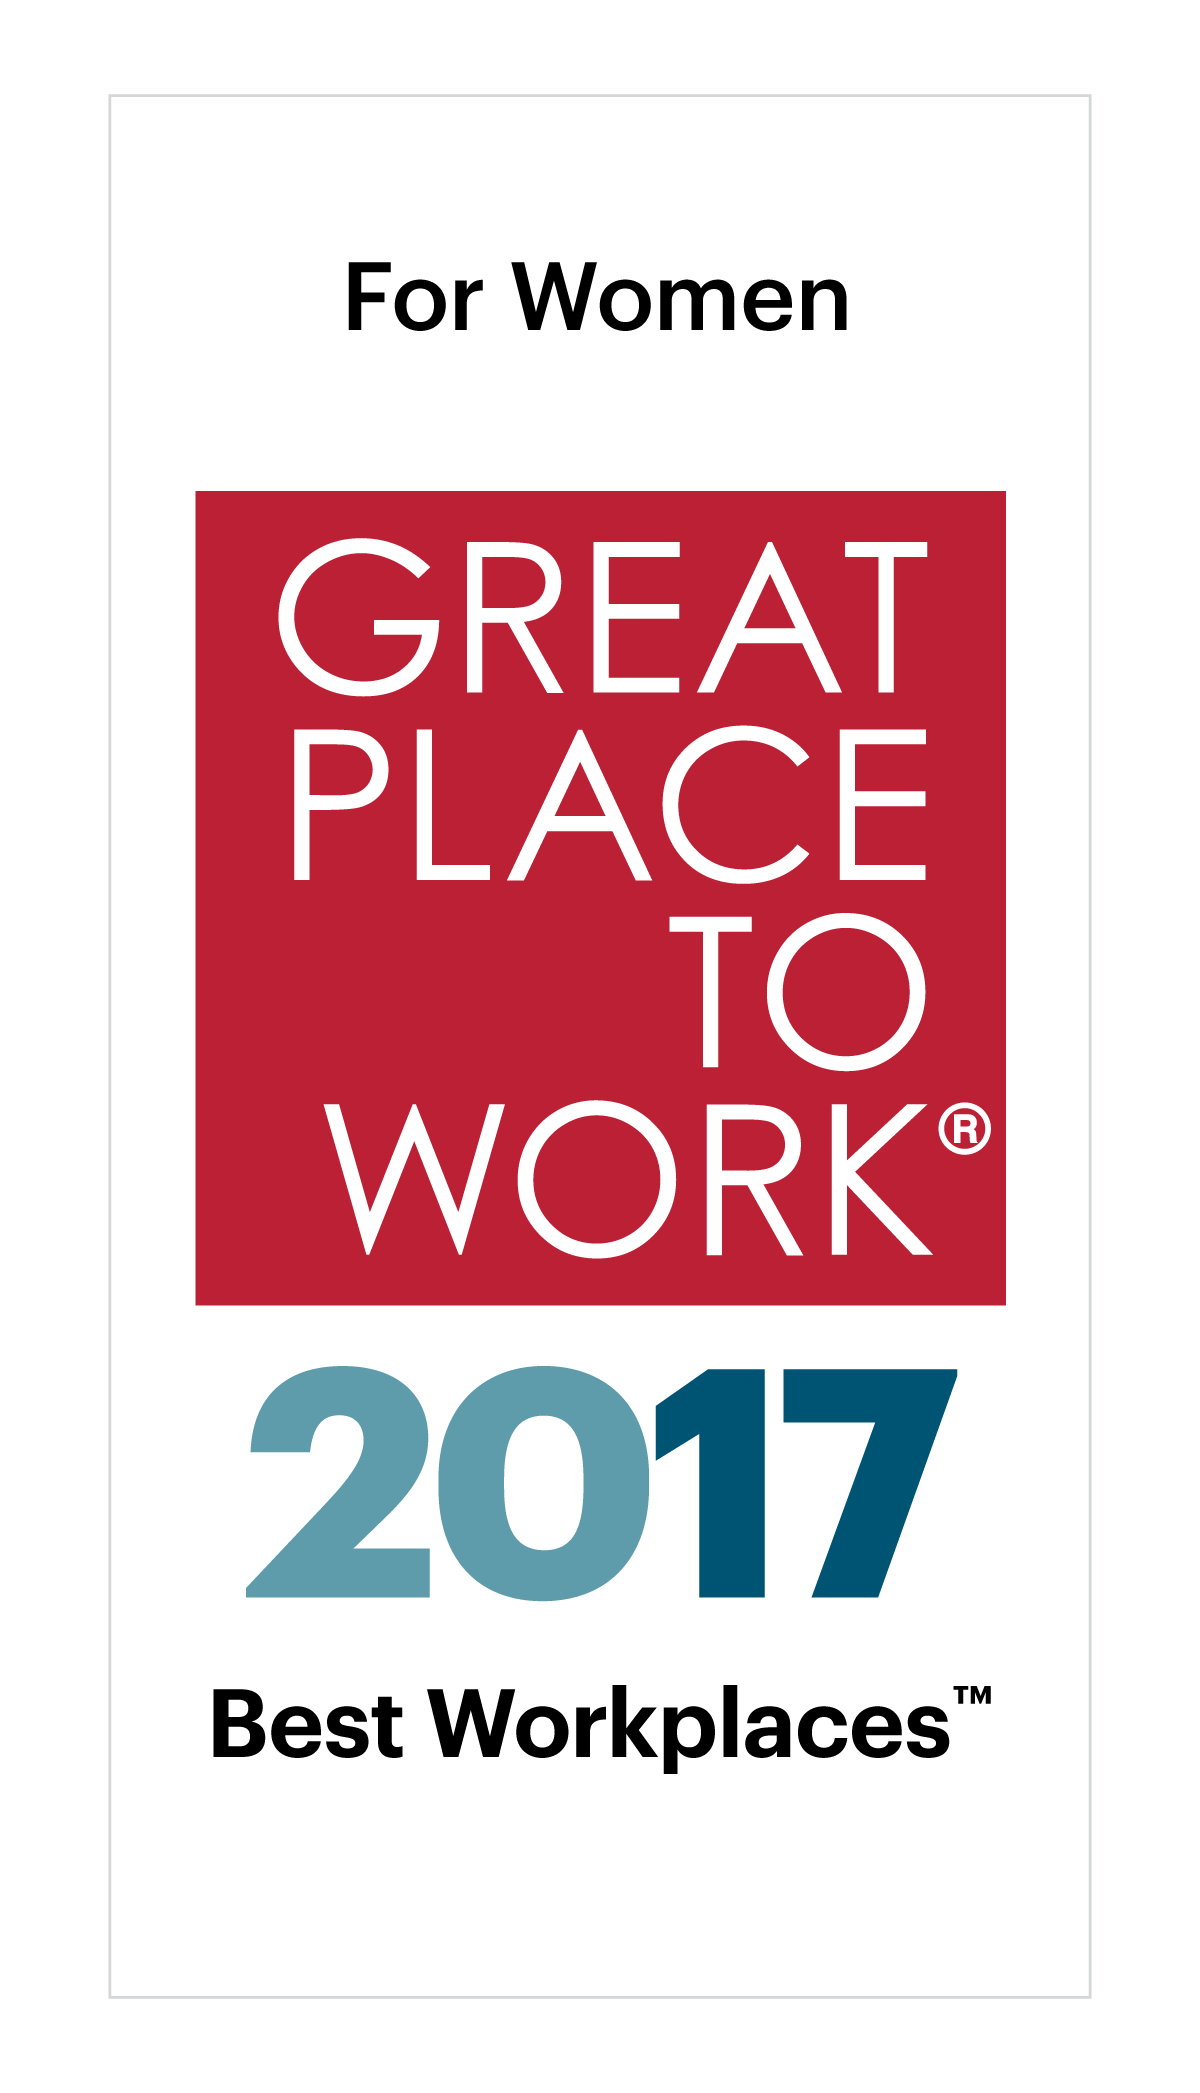 Women Career Options. Best Workplaces. Great Place to Work produces a ranking of the top 100 U.S. firms for women. Click the link in the post to access the full list.